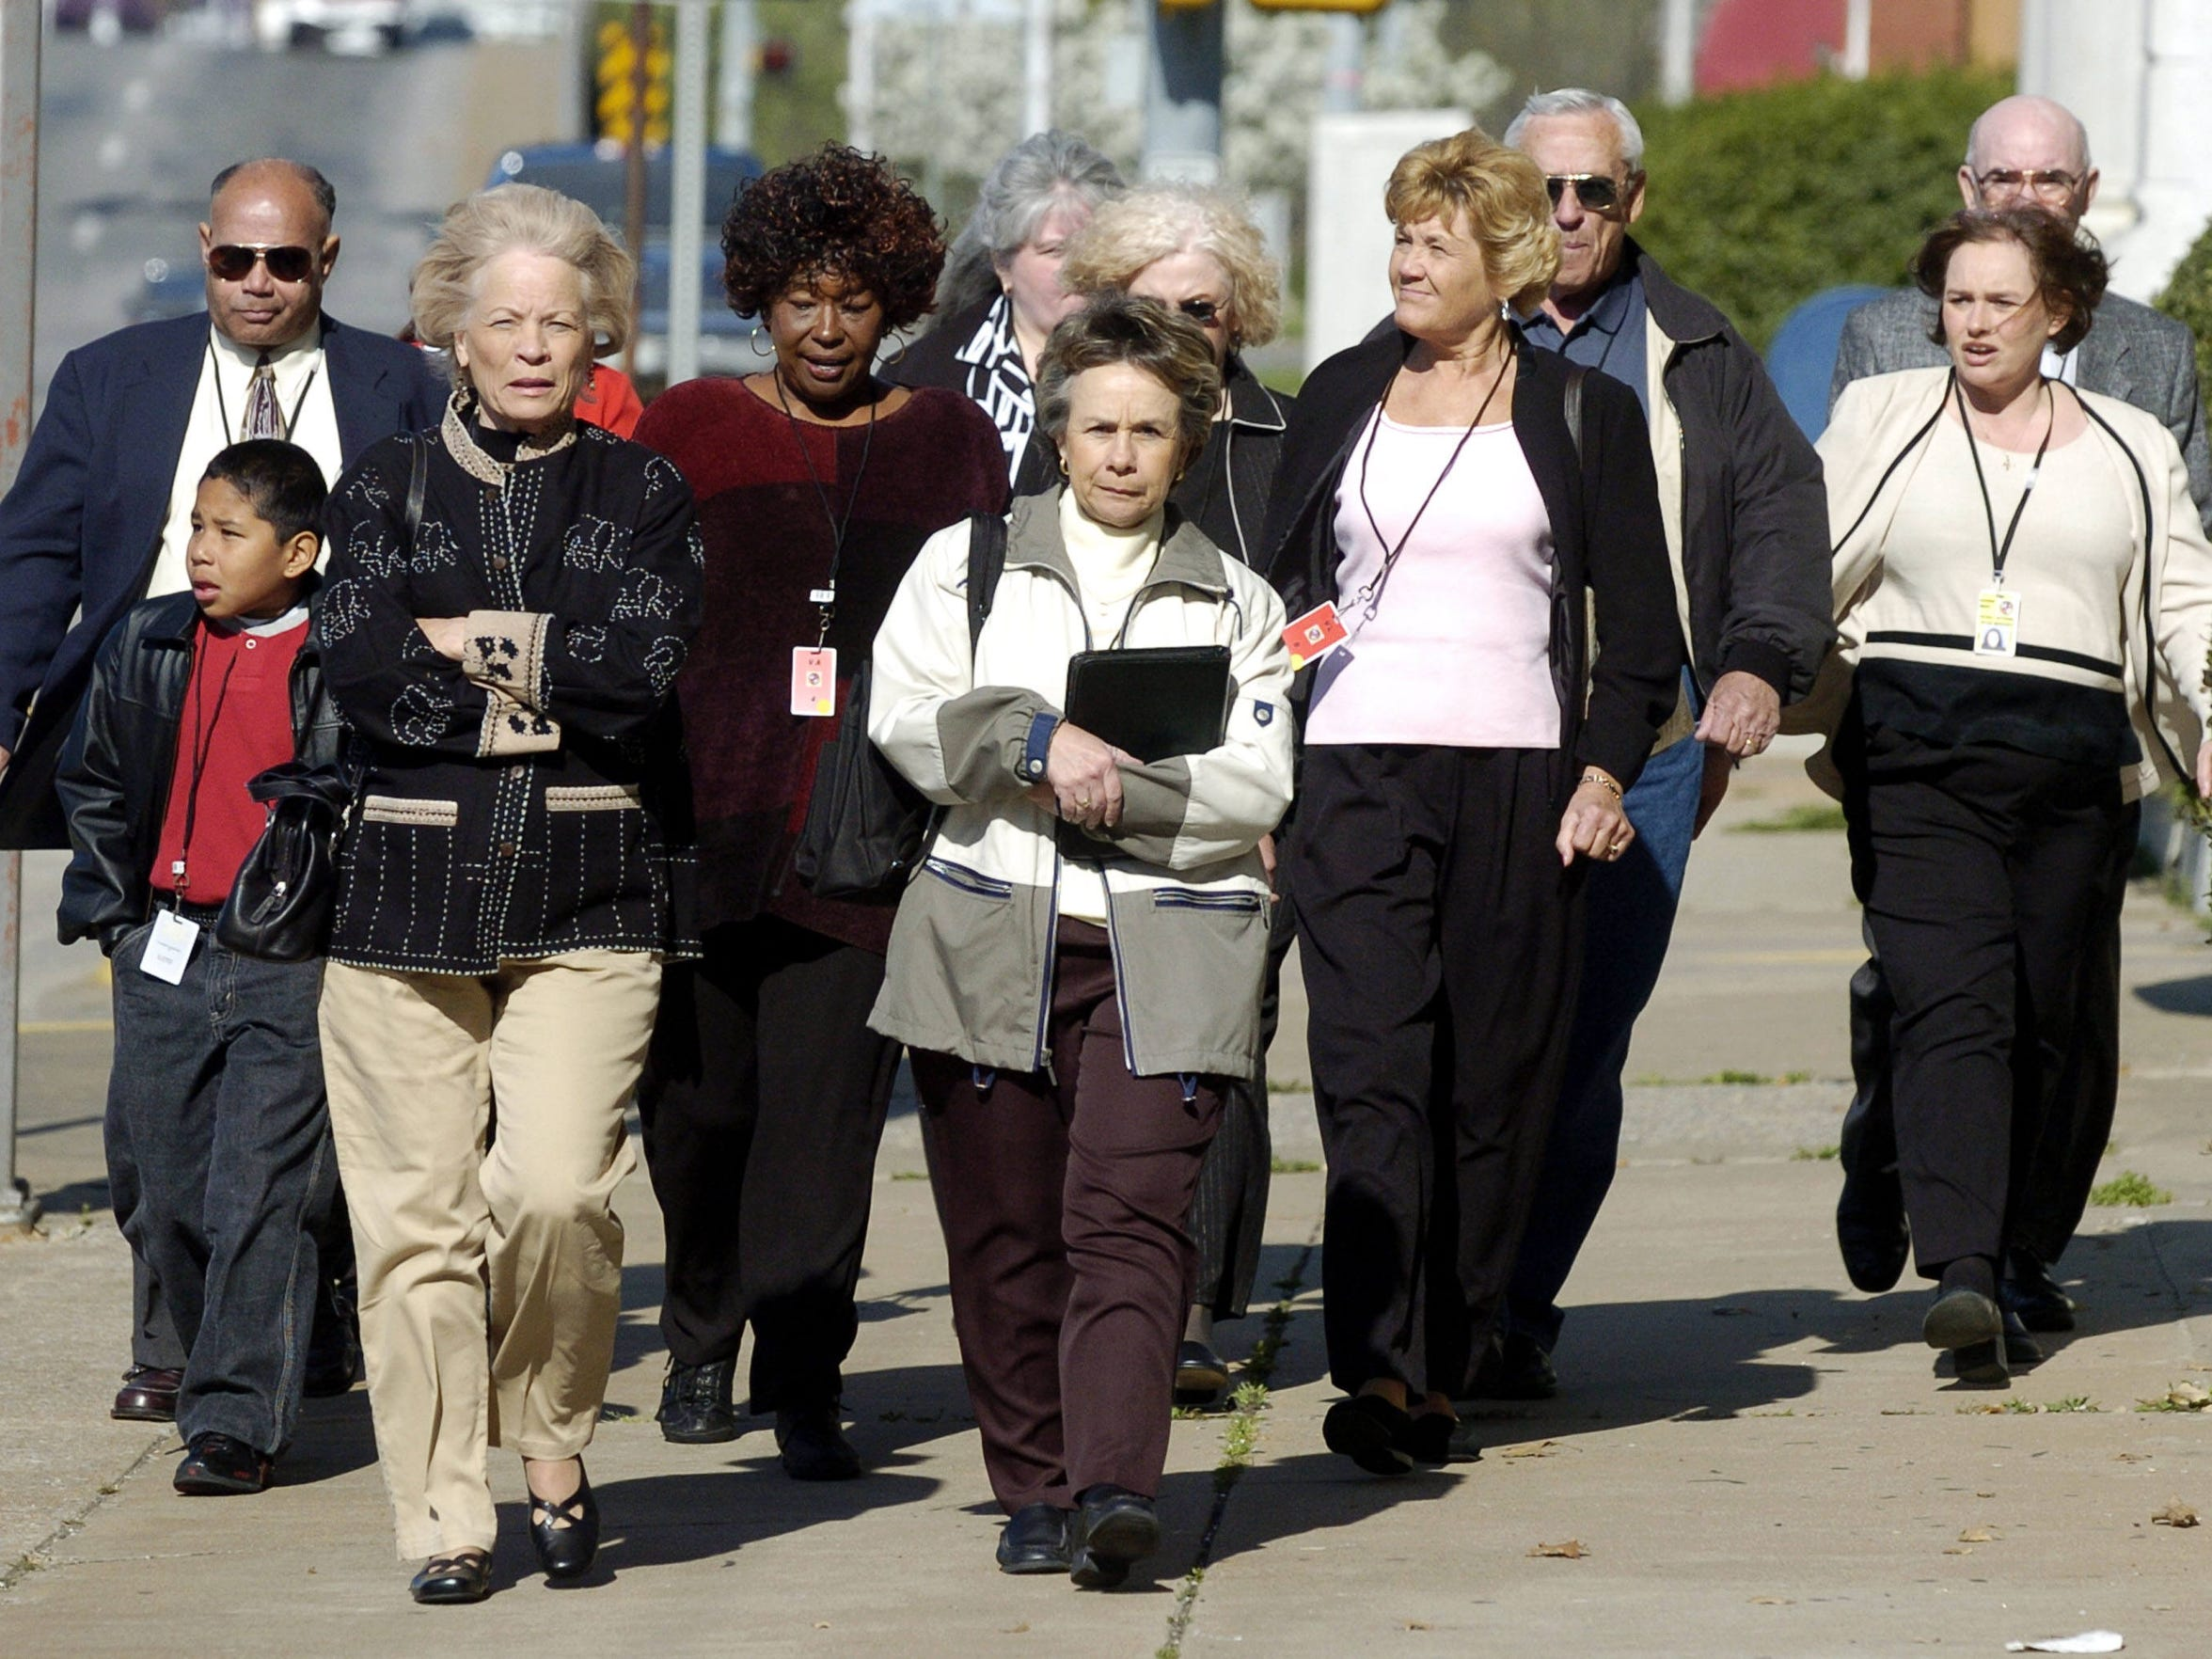 Family and friends of Oklahoma City bombing victims walk into the McAlester County Courthouse on the first day of Terry Nichols' trial on March 22, 2004.